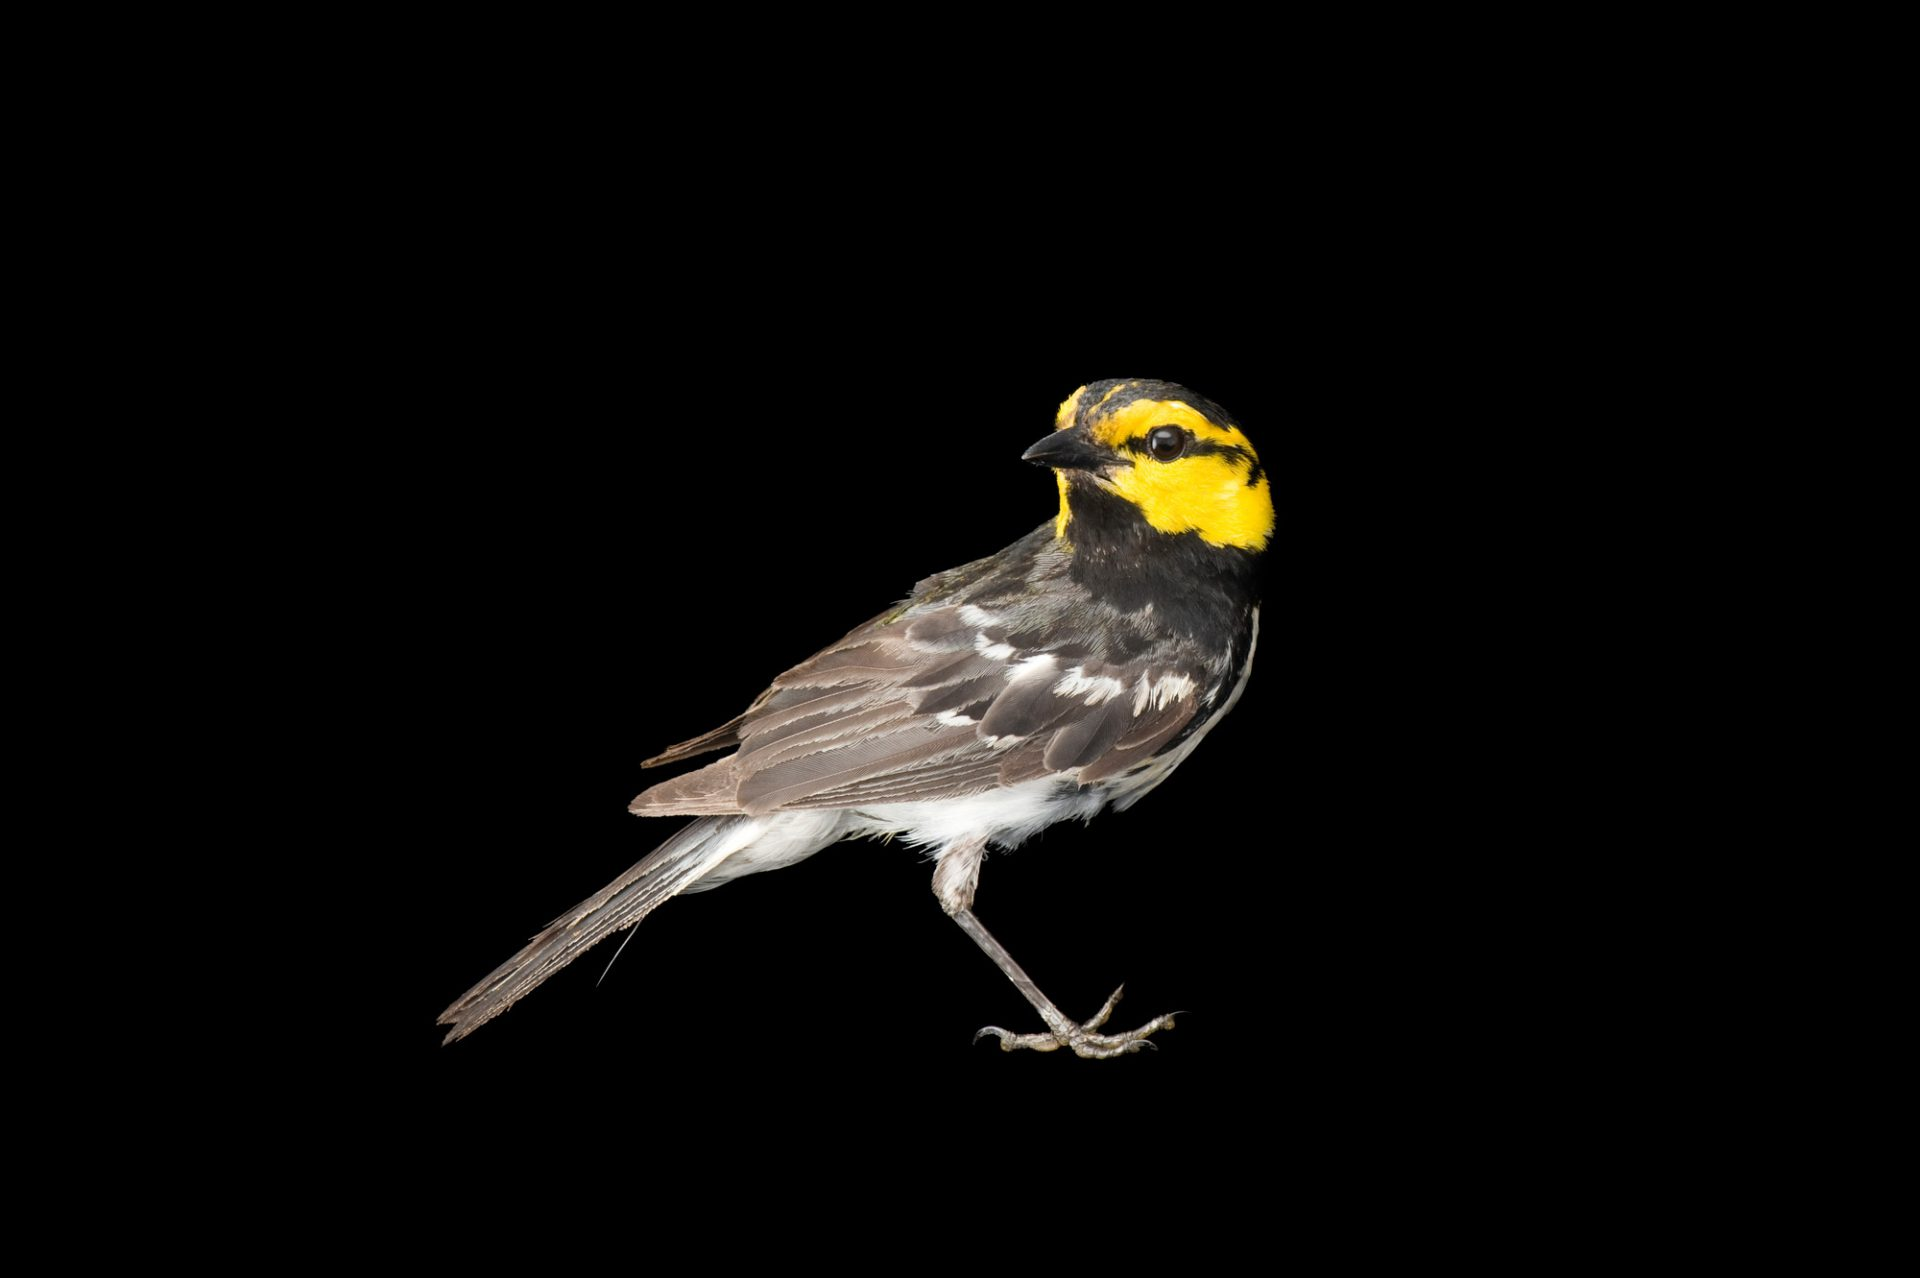 An endangered (IUCN and US) golden-cheeked warbler (Dendroica chrysoparia) at Fort Hood, Texas.